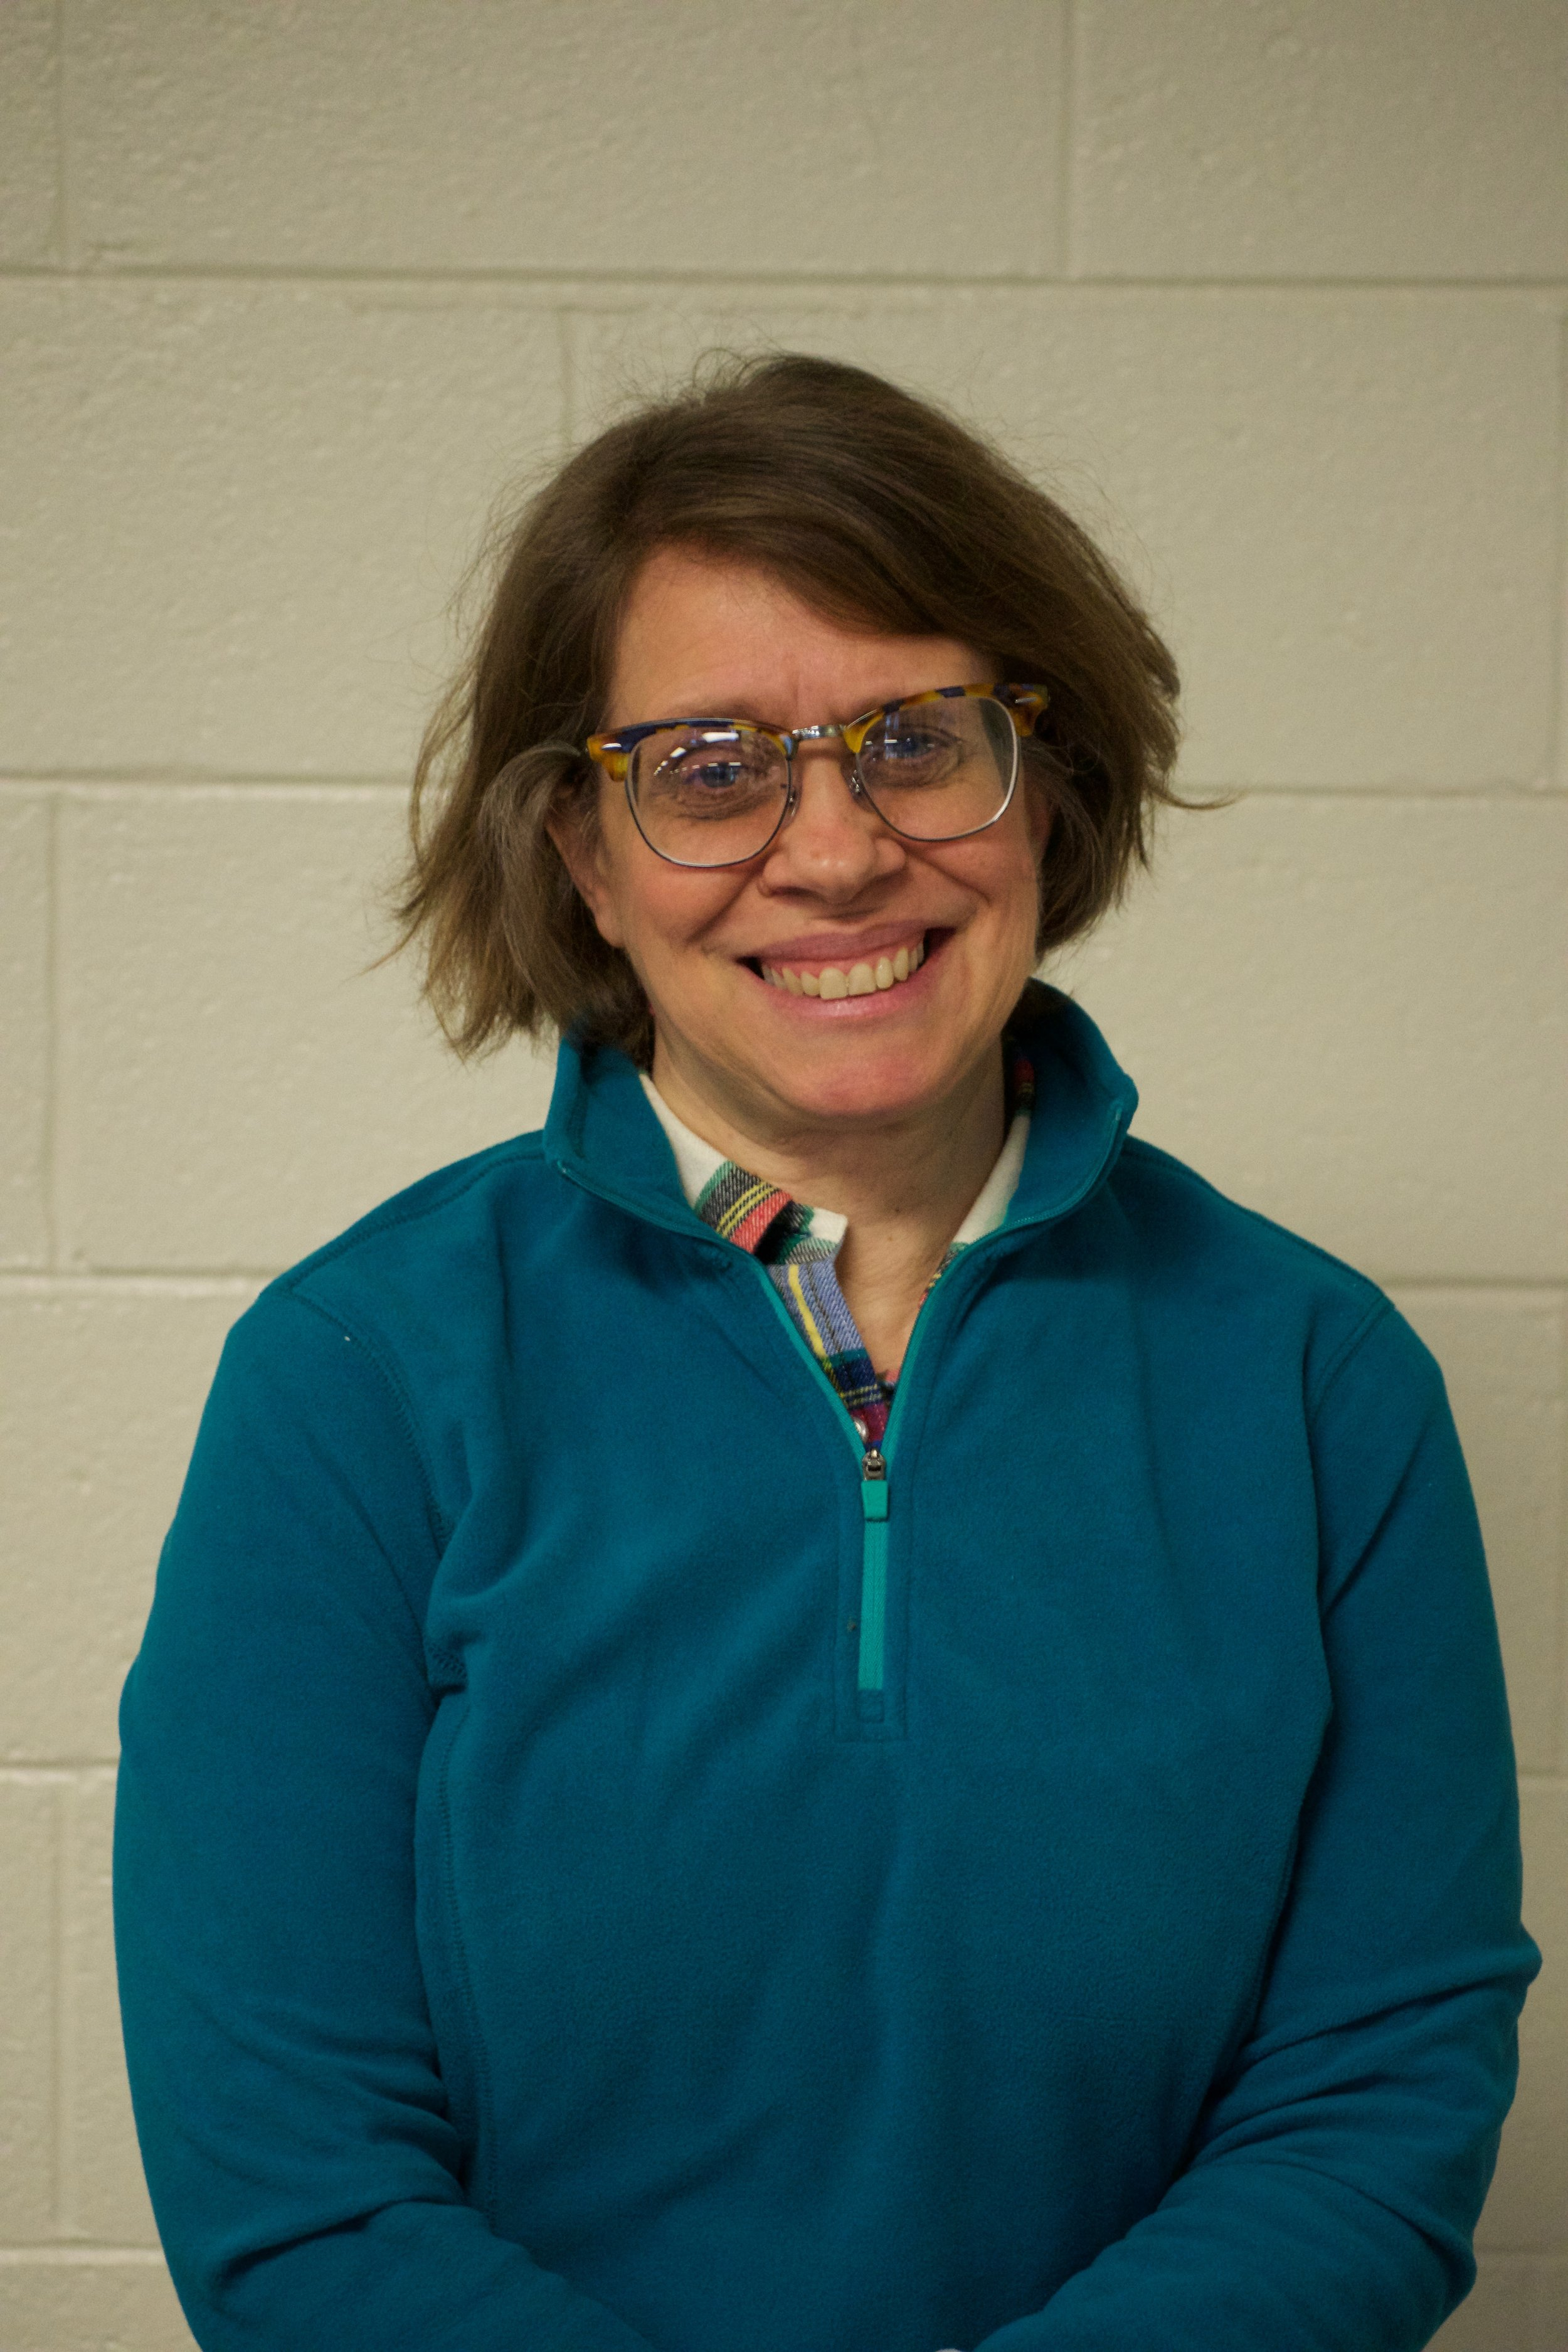 Mrs. Lounsbury teaches science at Charter and is in her 13th year here. Her understanding of biology, physics, and life contributed greatly to the creation of this project. Photo by Connor Carp.